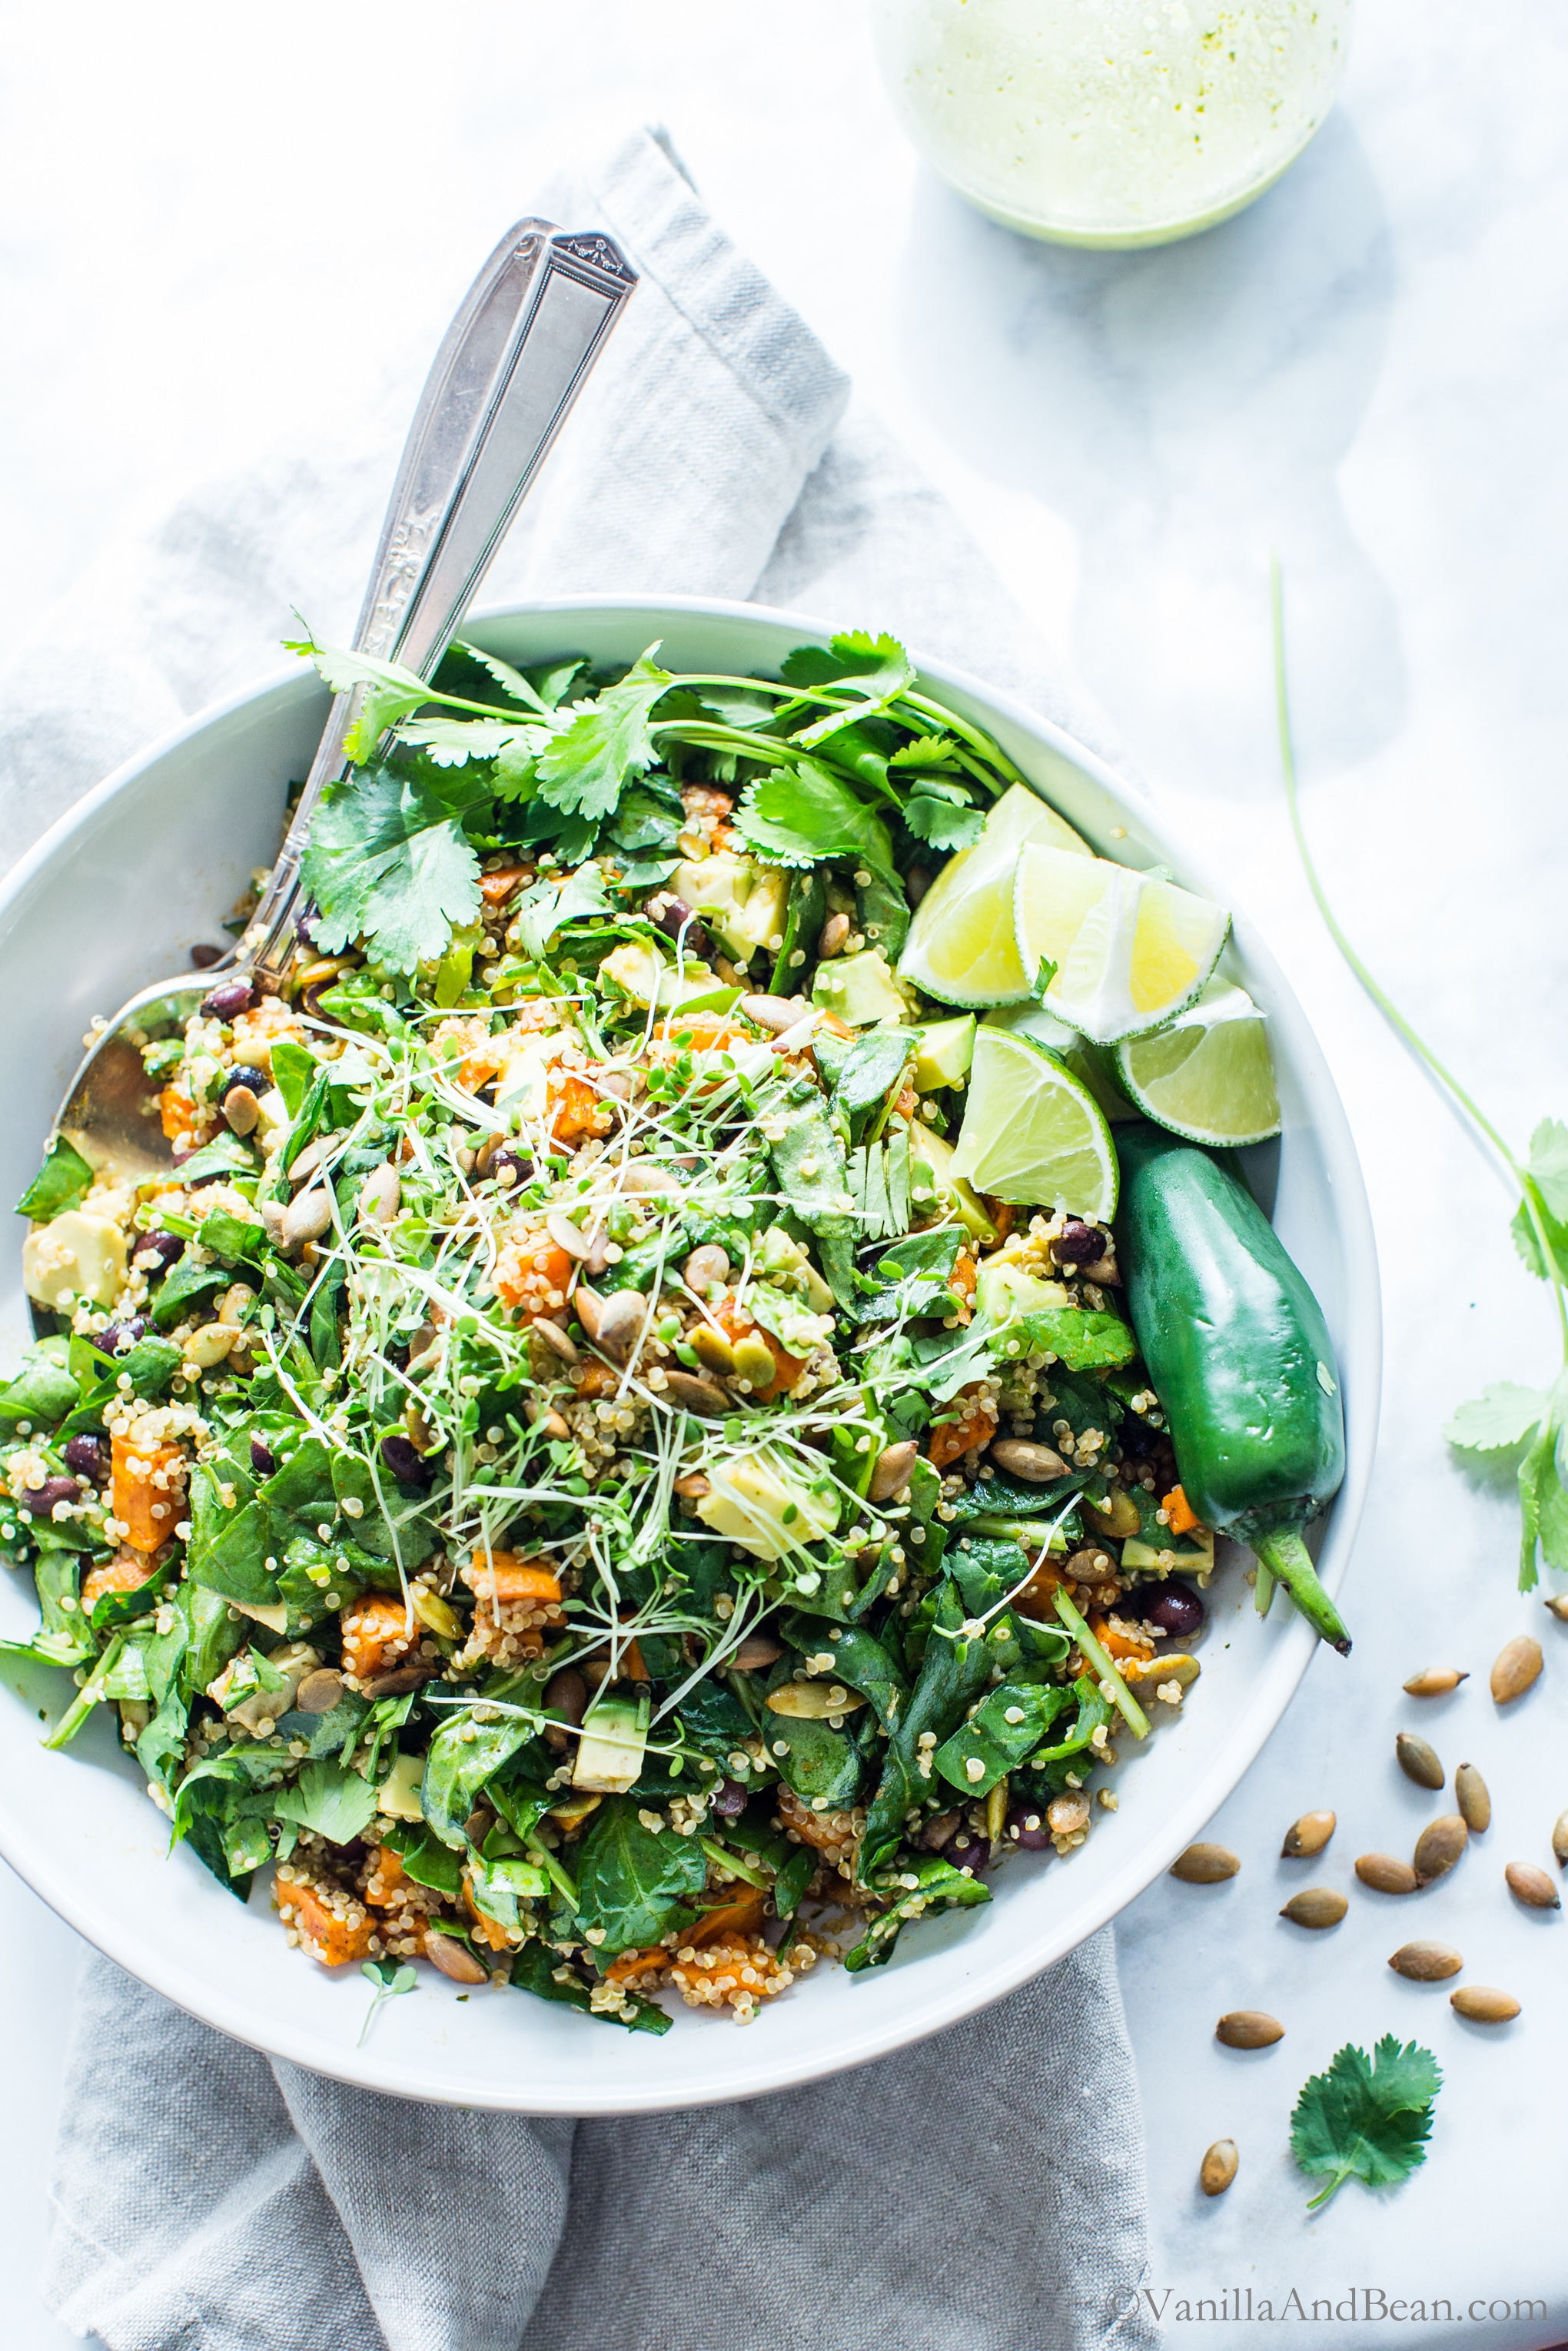 A make-ahead, ready when you are salad, Black Bean Sweet Potato Quinoa Salad with Smoky Pepitas and Roasted Jalapeño Lime Dressing; a Southwestern style salad with all the Mexican flavors, yet not too spicy. vegan + gluten free